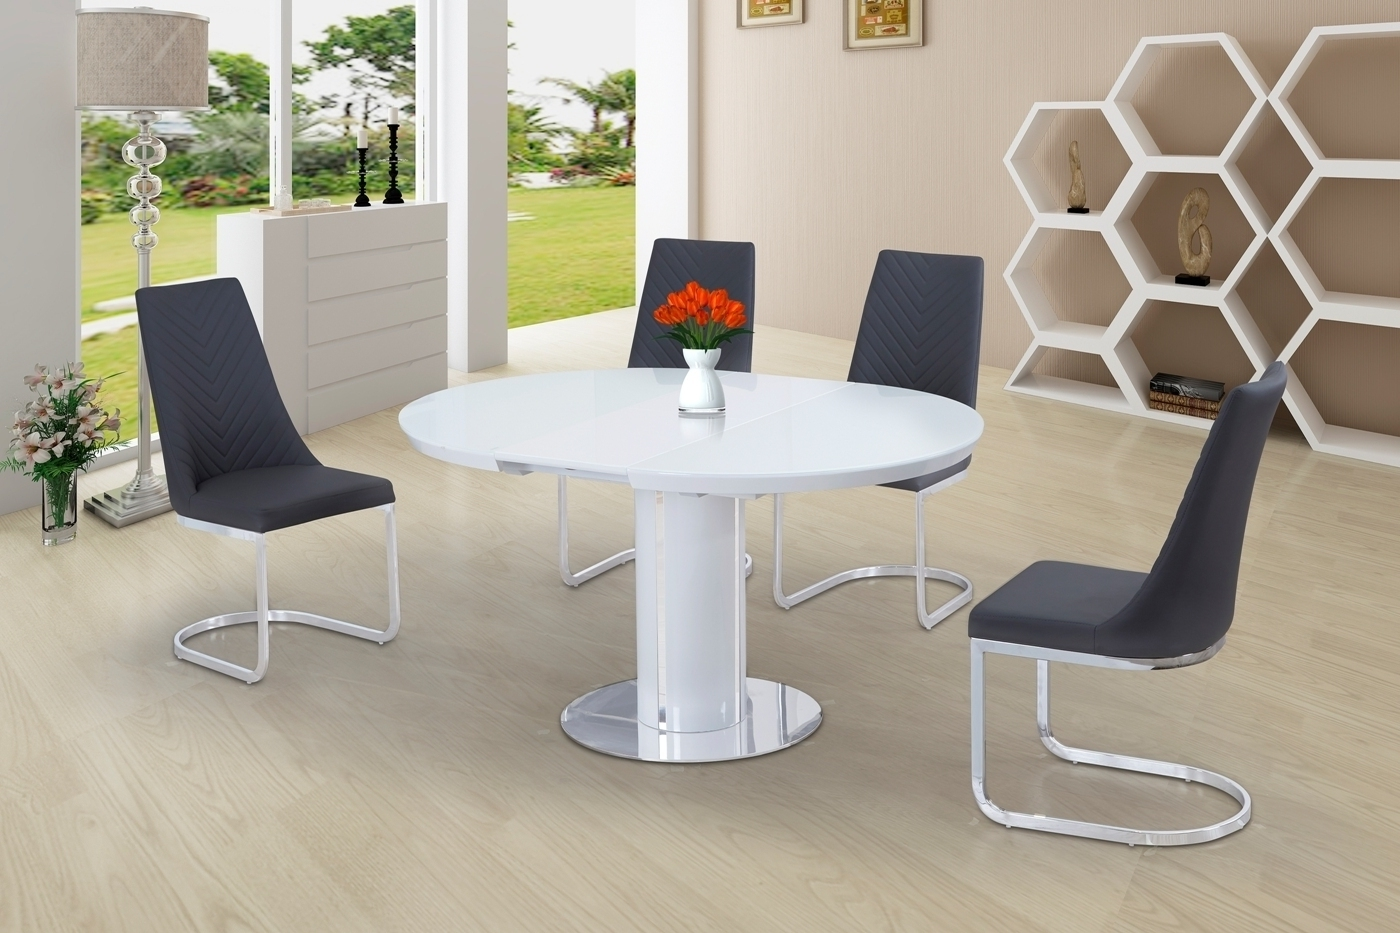 Oval White High Gloss Dining Tables Regarding Best And Newest Round White Glass High Gloss Dining Table And 6 Grey Chairs (View 2 of 25)